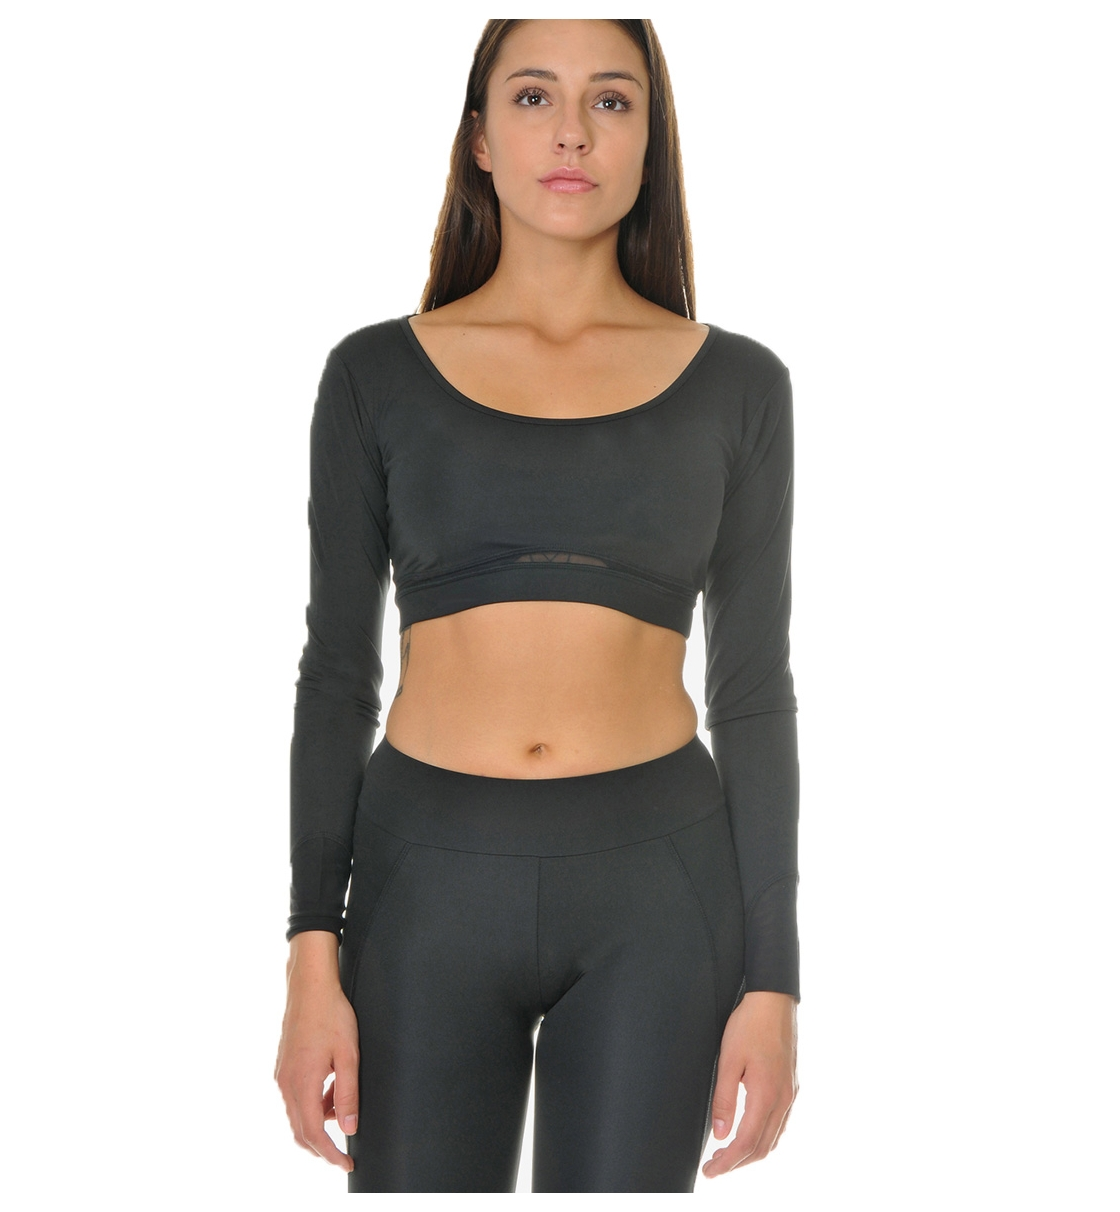 Body Talk Fw16 Spicyw Ls Bra Top